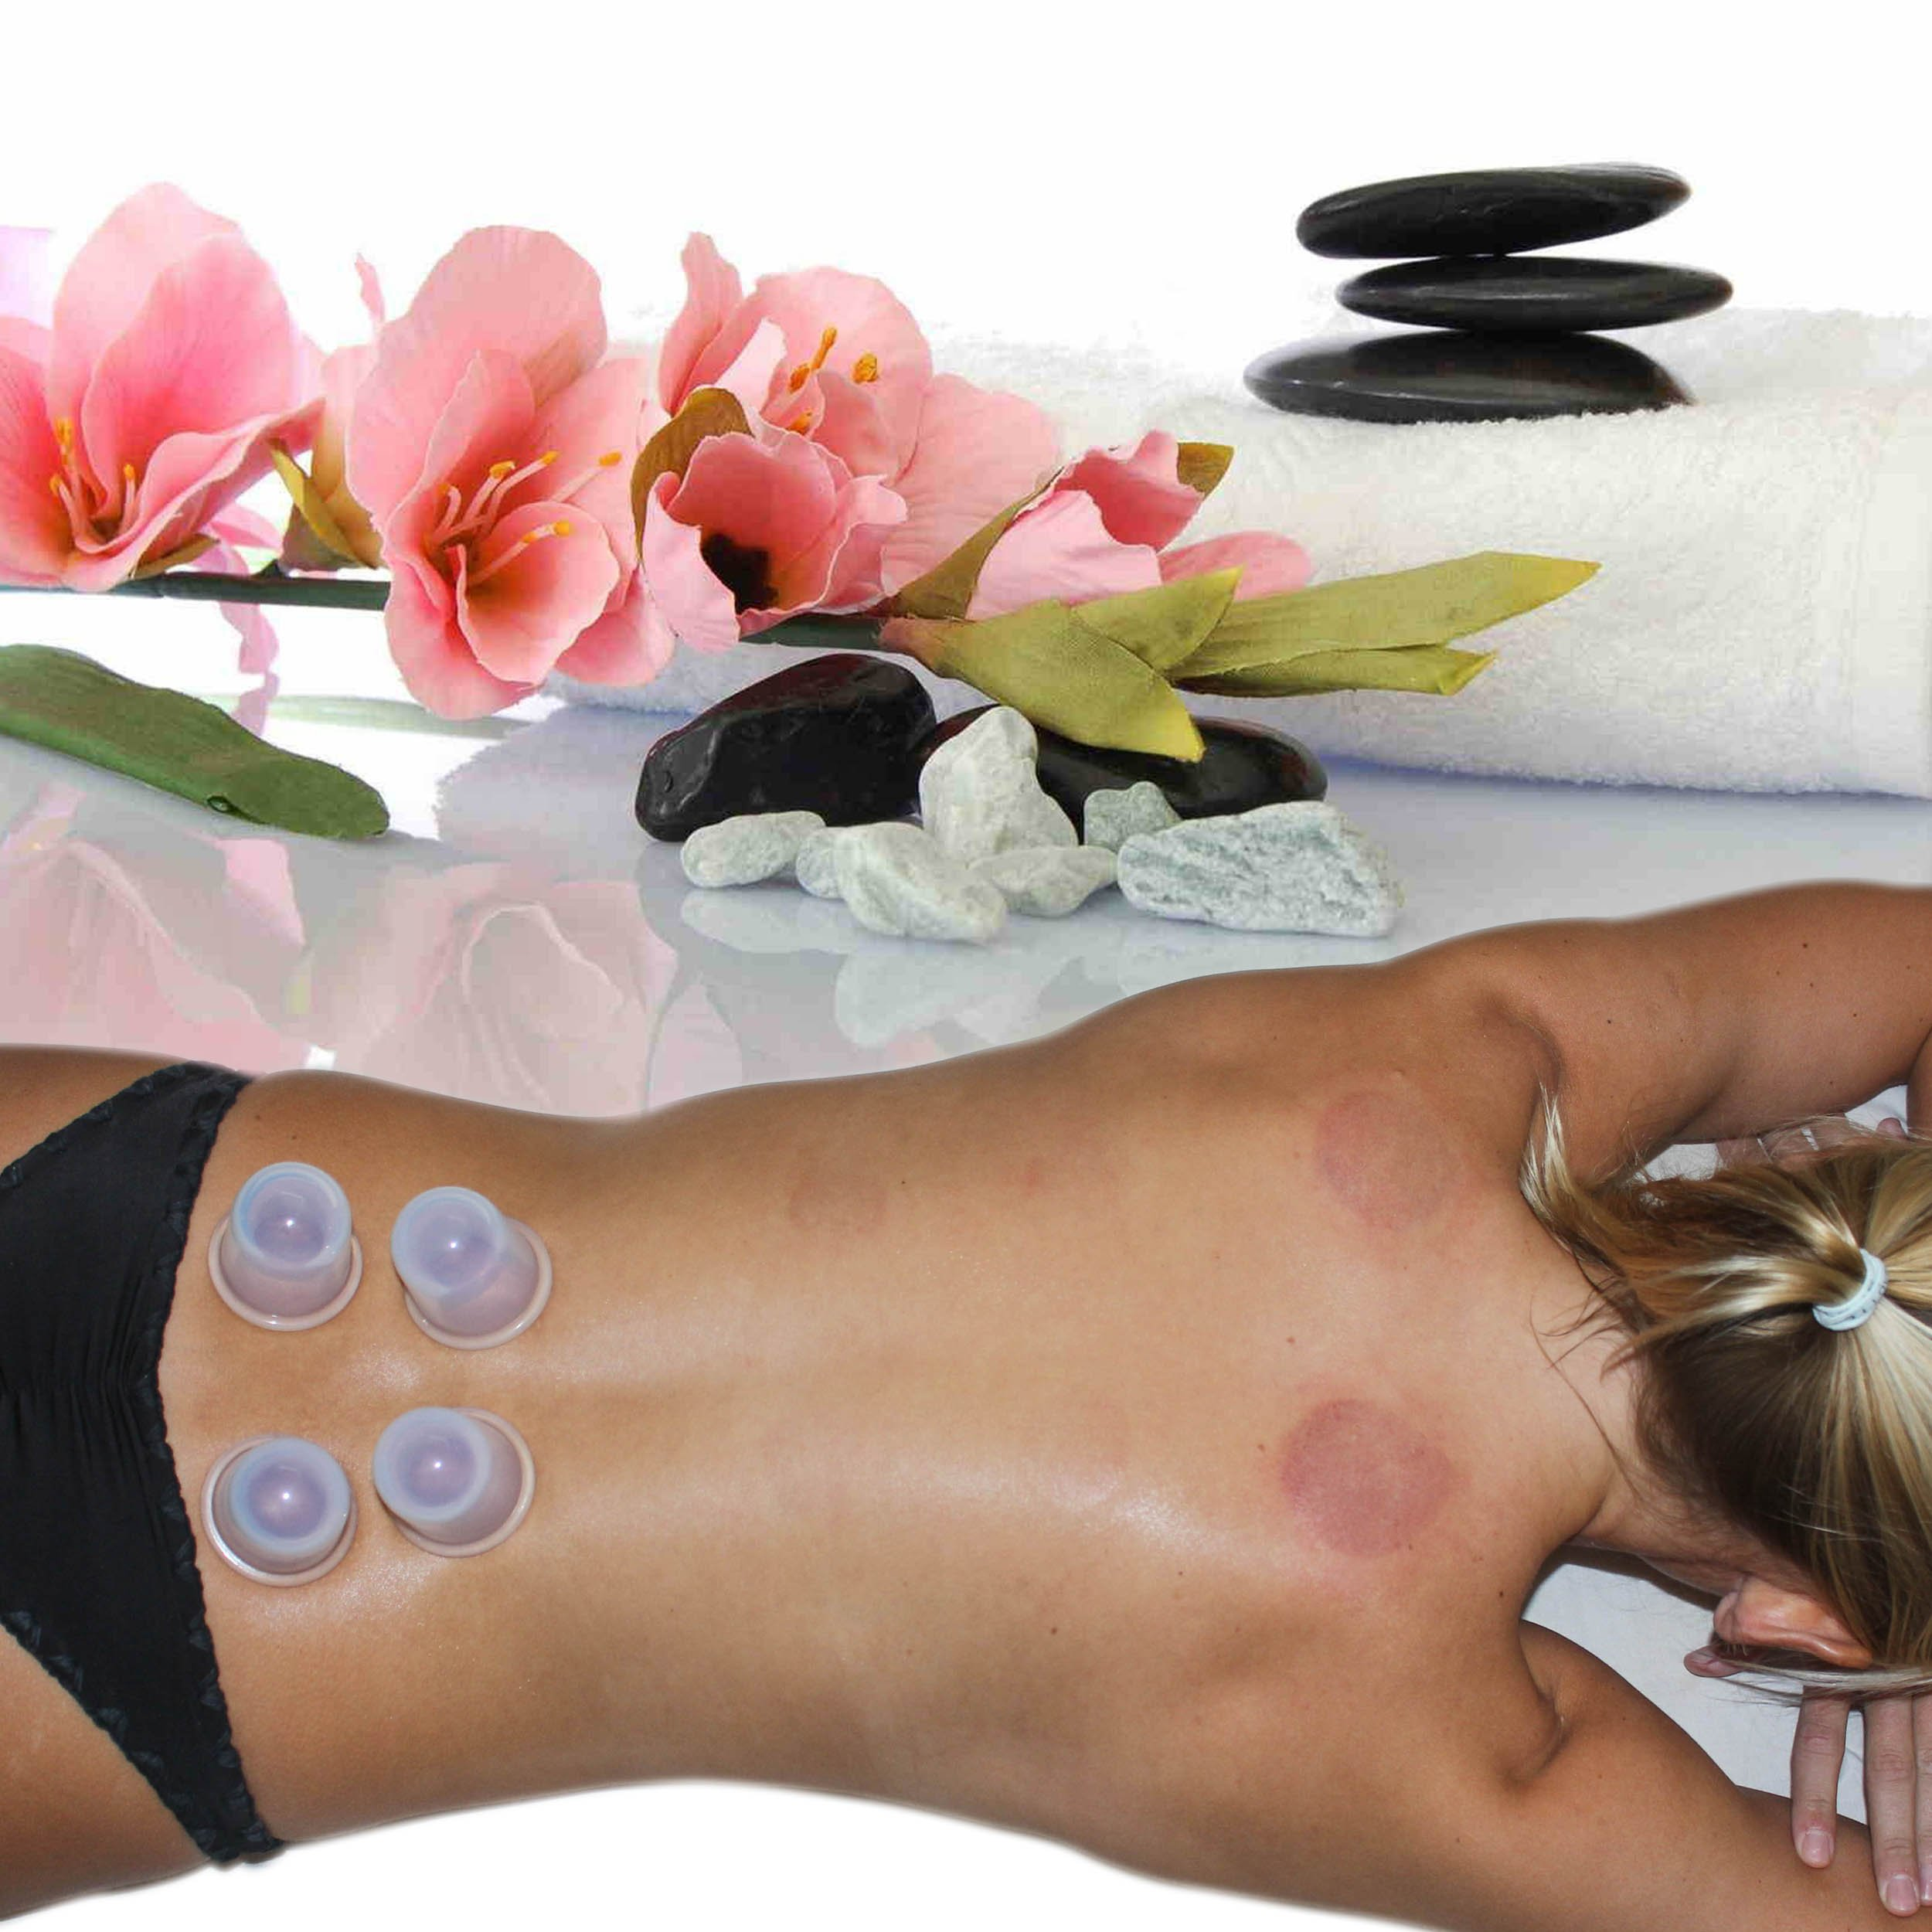 Acupuncture Massage Fireless Cupping Therapy Set By DoSensePro. Ergonomic, Flexible Medical Grade Silicone 6 Vacuum Cups For Arthritis, Pain Relief, Relaxation, Anti-Aging & Cellulite Treatment by DoSensePro (Image #8)